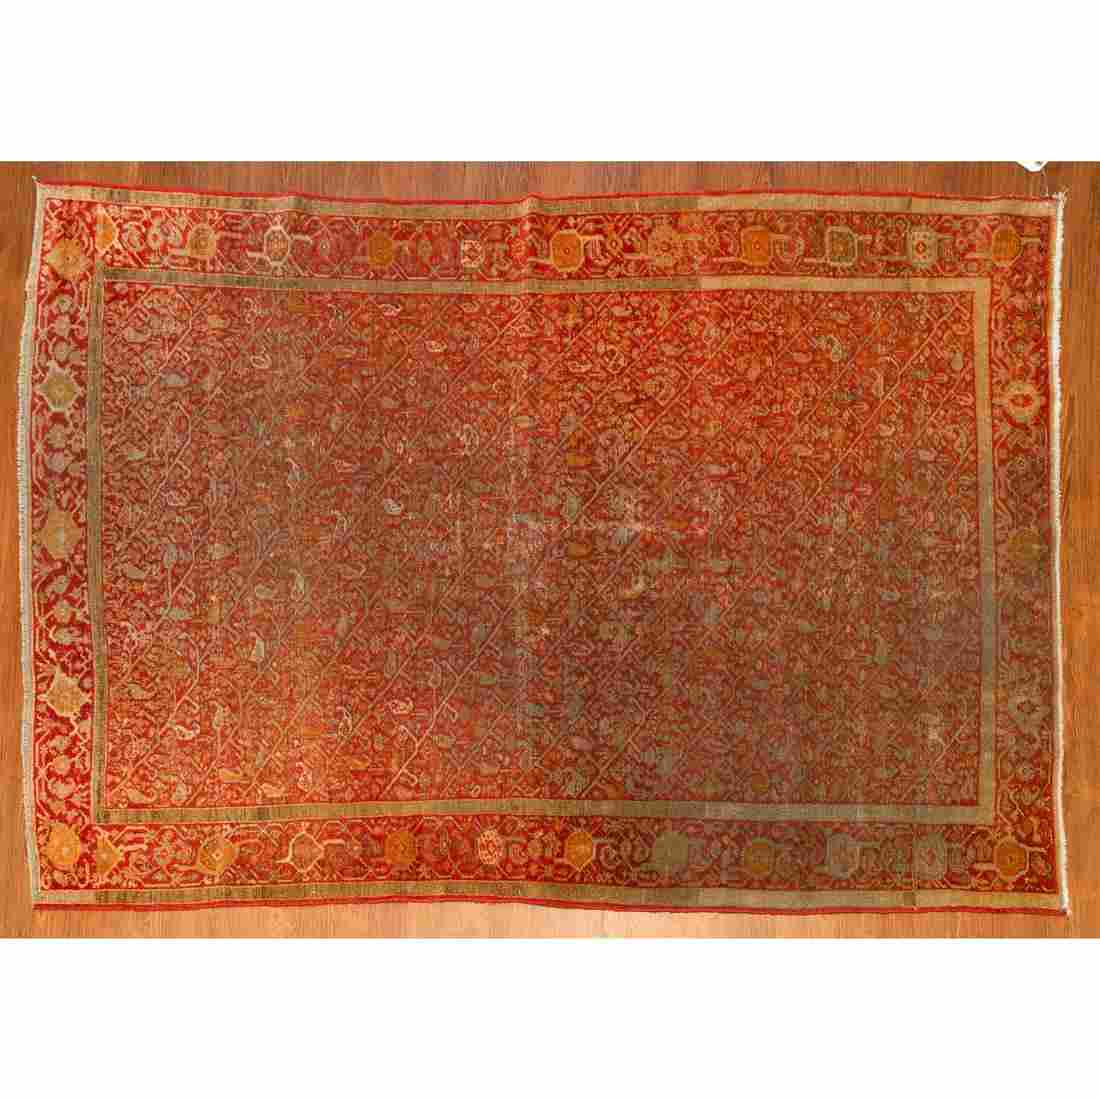 Antique Malayer Rug, Persia, 4.2 x 6.7